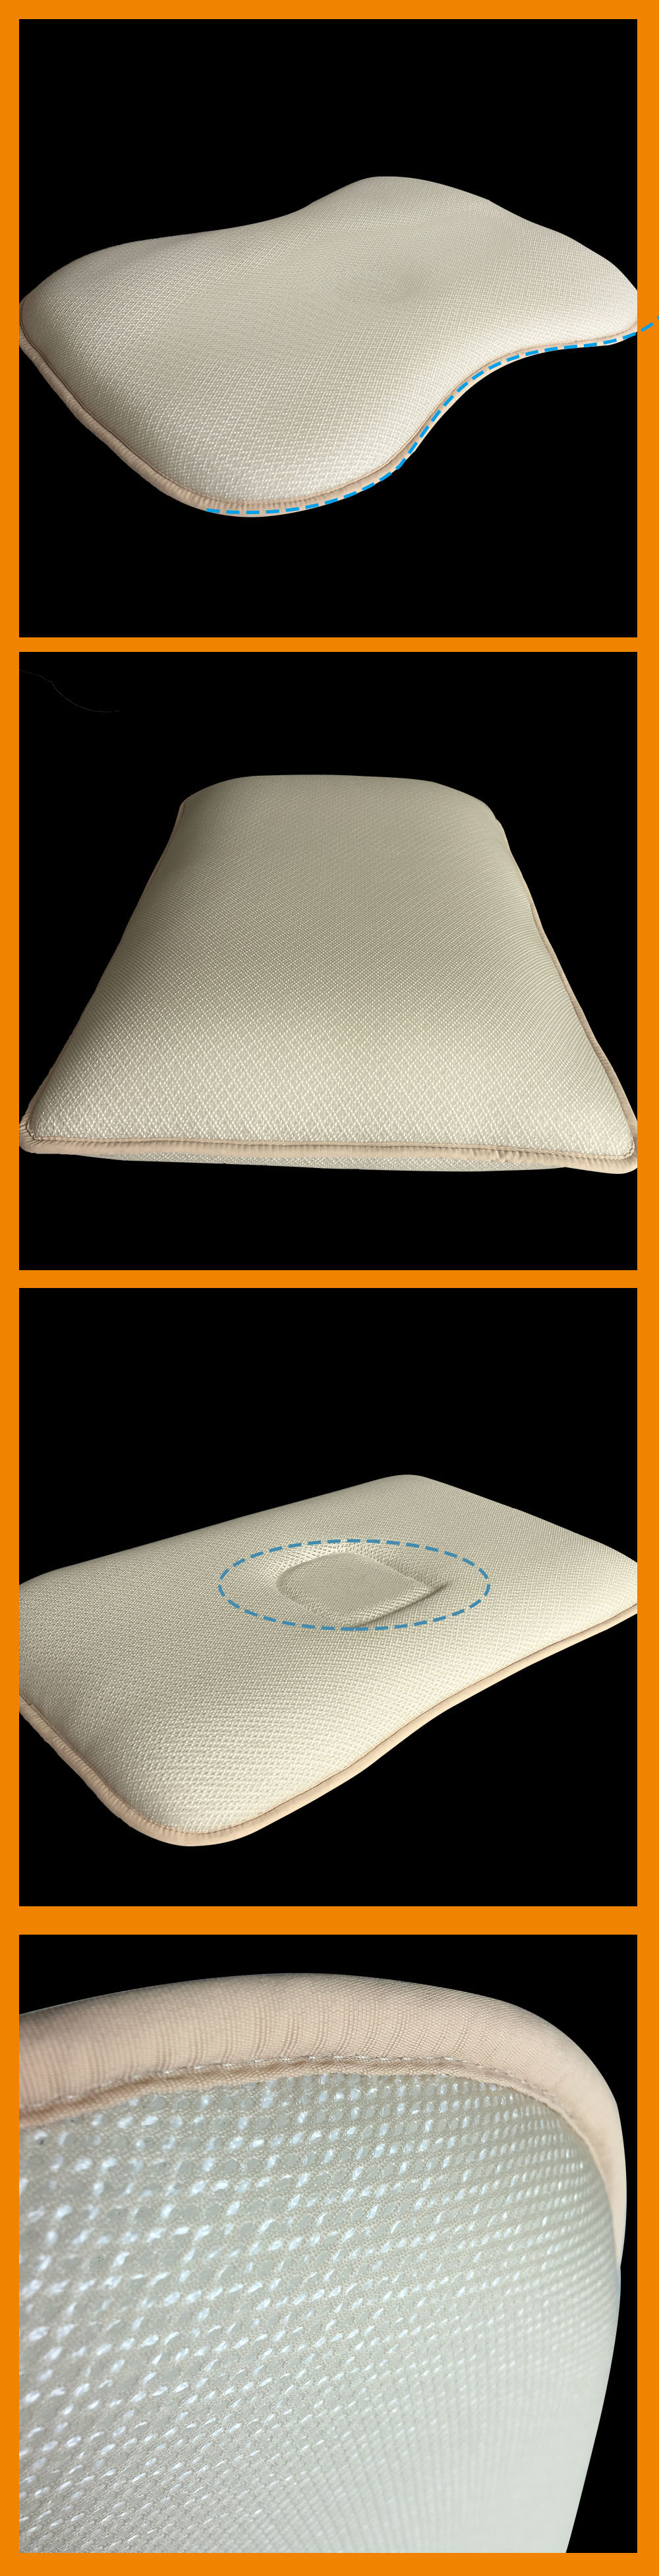 3d mesh fabric pillow.jpg